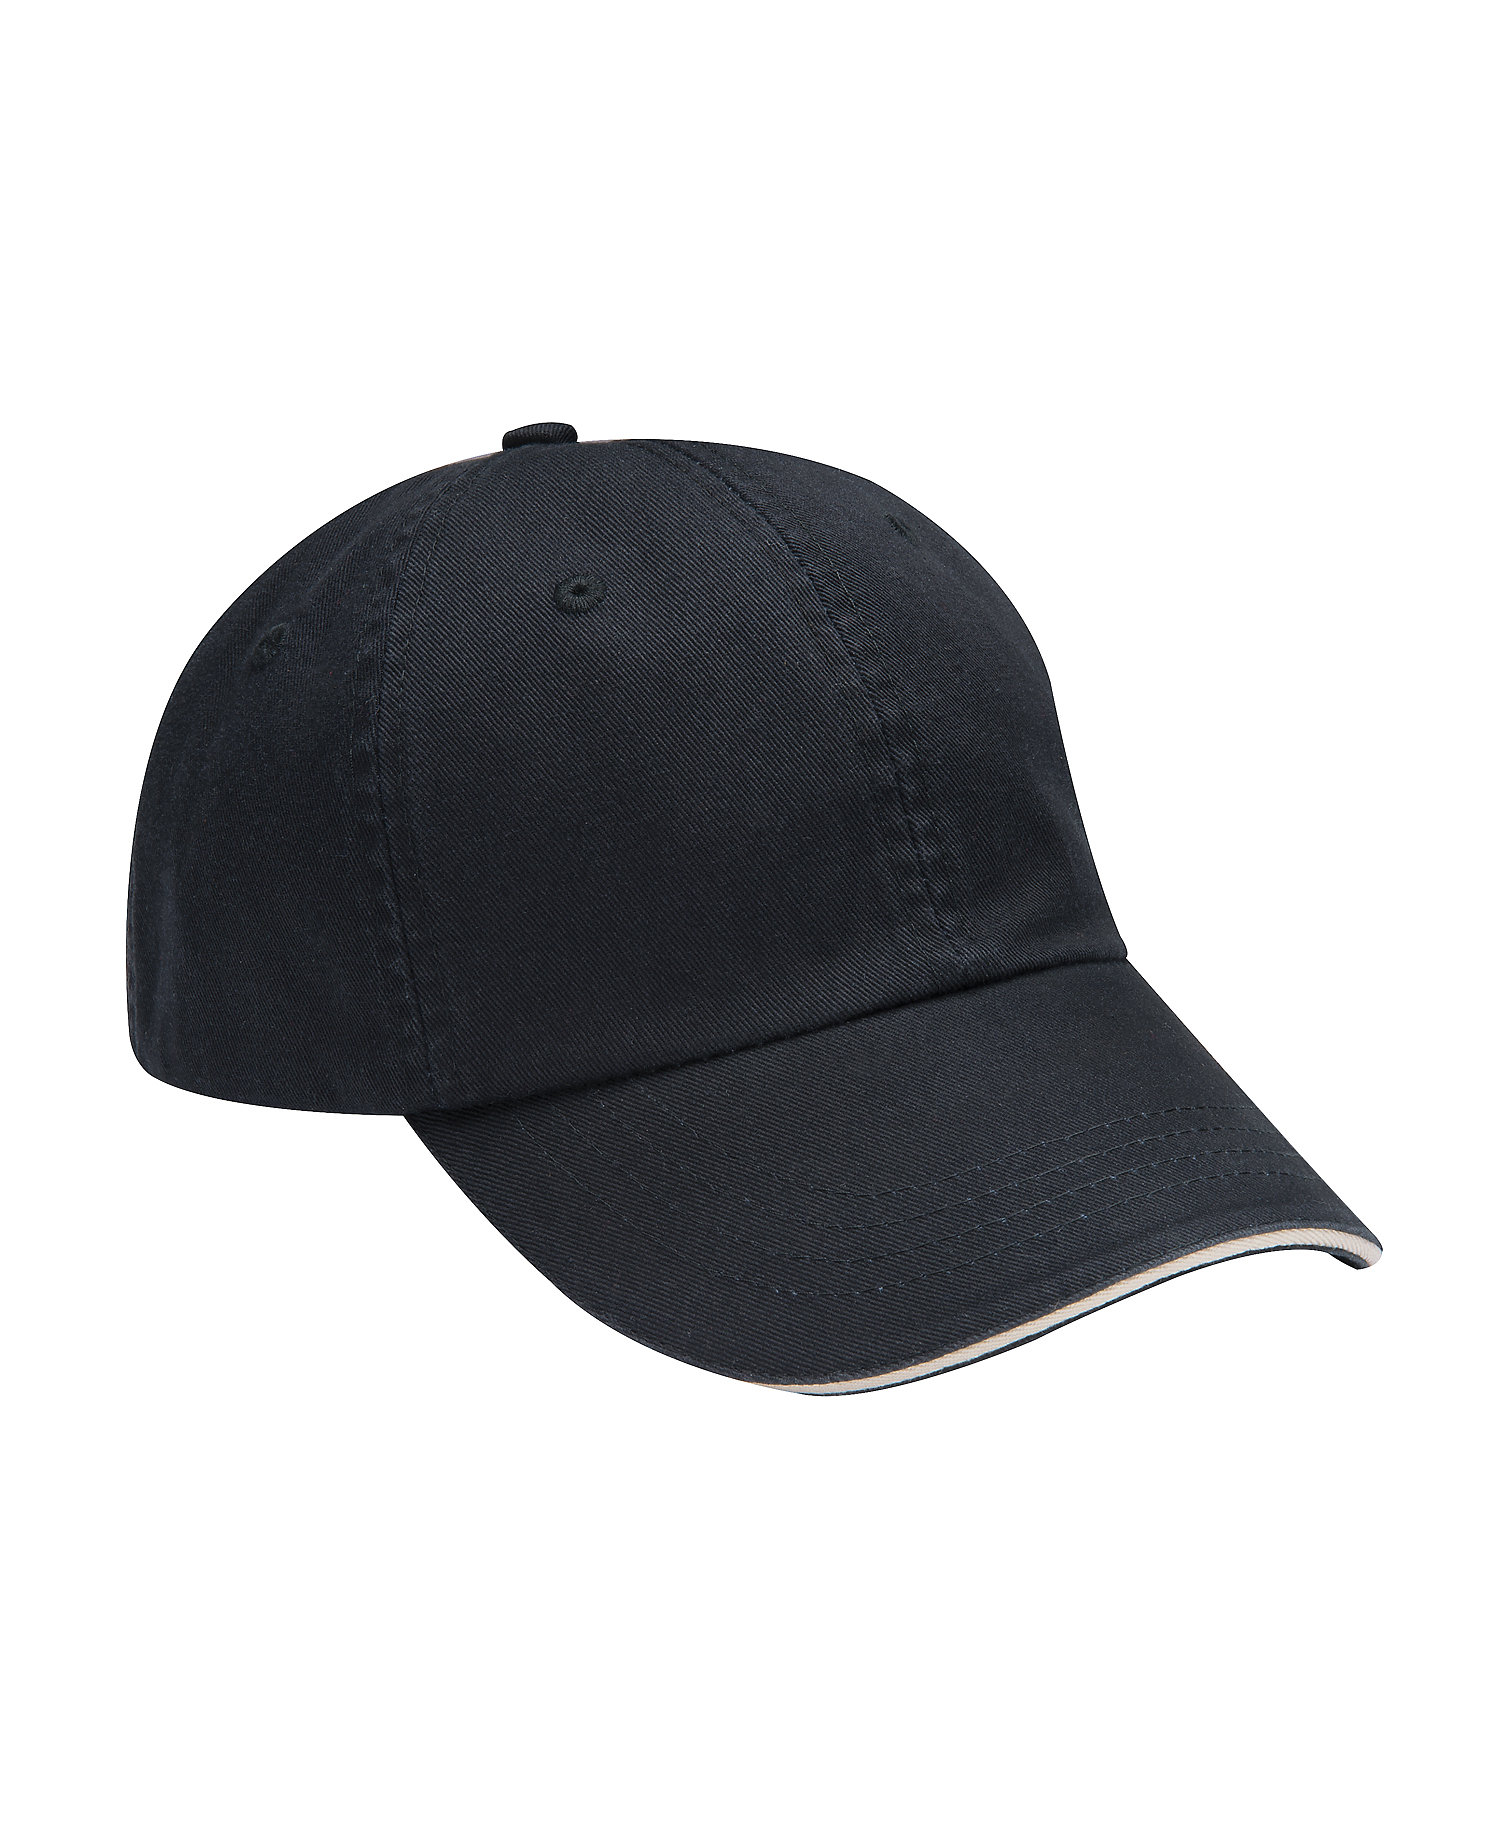 Adams GM102 - Gimmie Sandwich Bill Cap